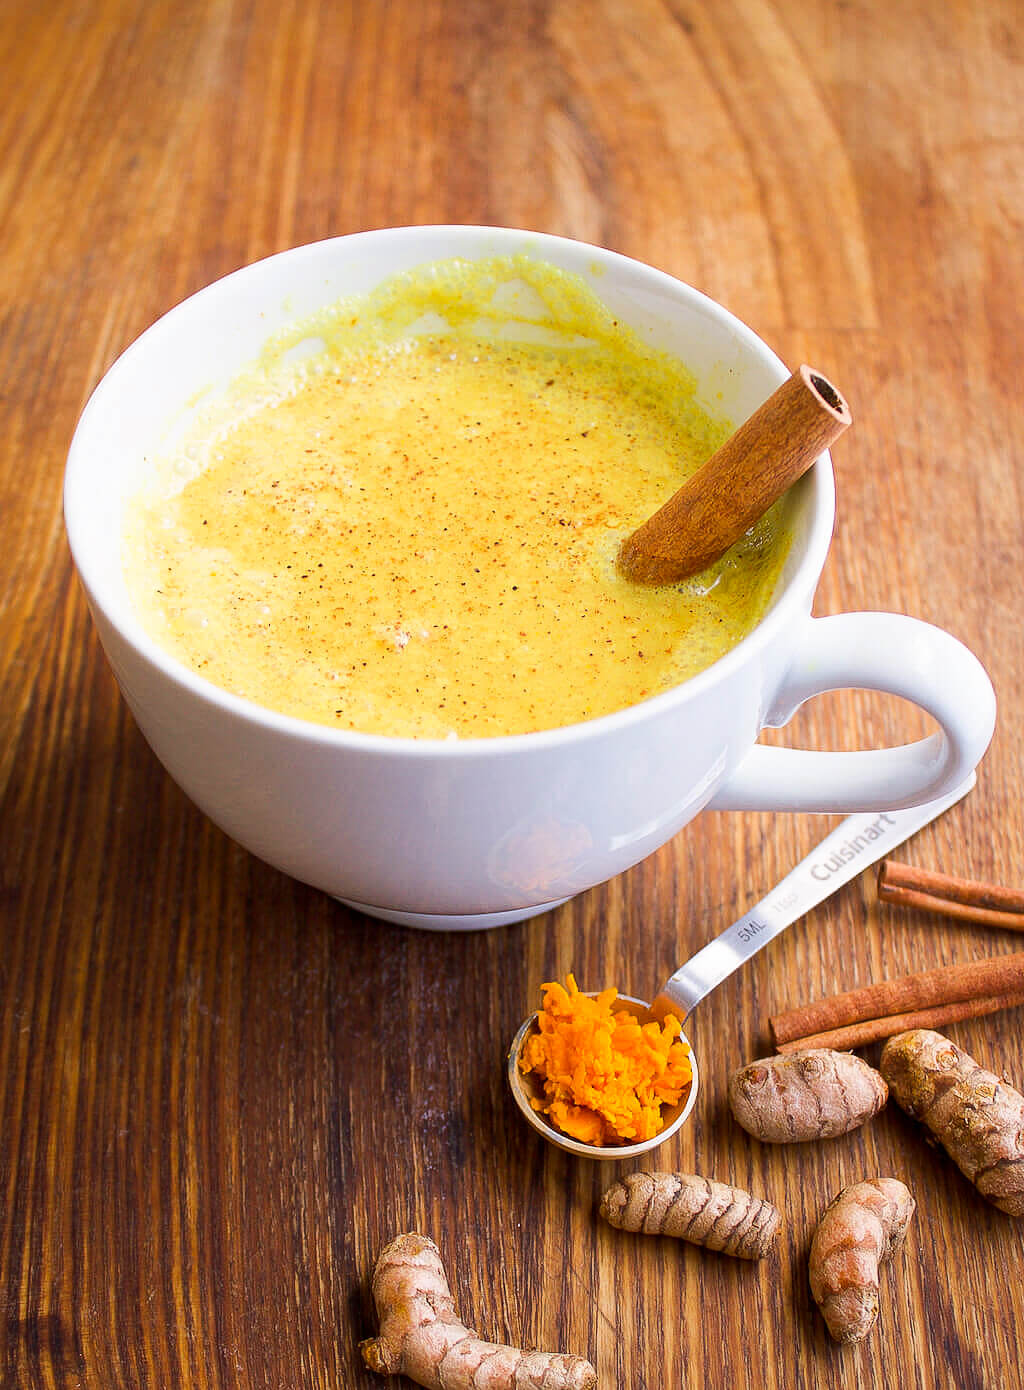 Sleepytime Golden Milk | Turmeric Moon Milk Recipe - The Produce Moms